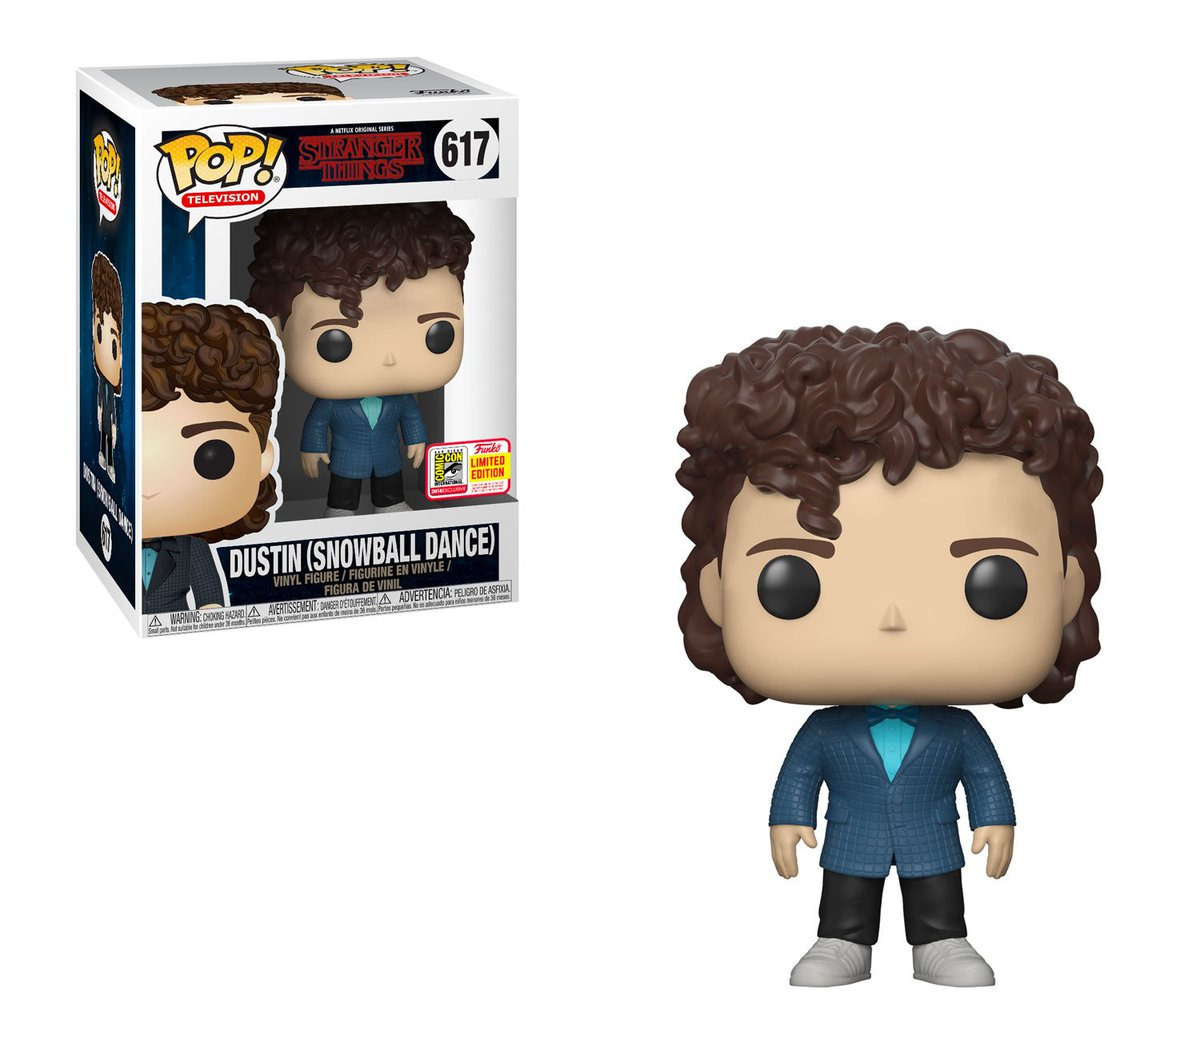 RT &amp; follow @OriginalFunko for a chance to WIN a #SDCC 2018 exclusive Stranger Things Dustin (Snowball Dance) Pop! #StrangerThings <br>http://pic.twitter.com/Q7DctHarBm